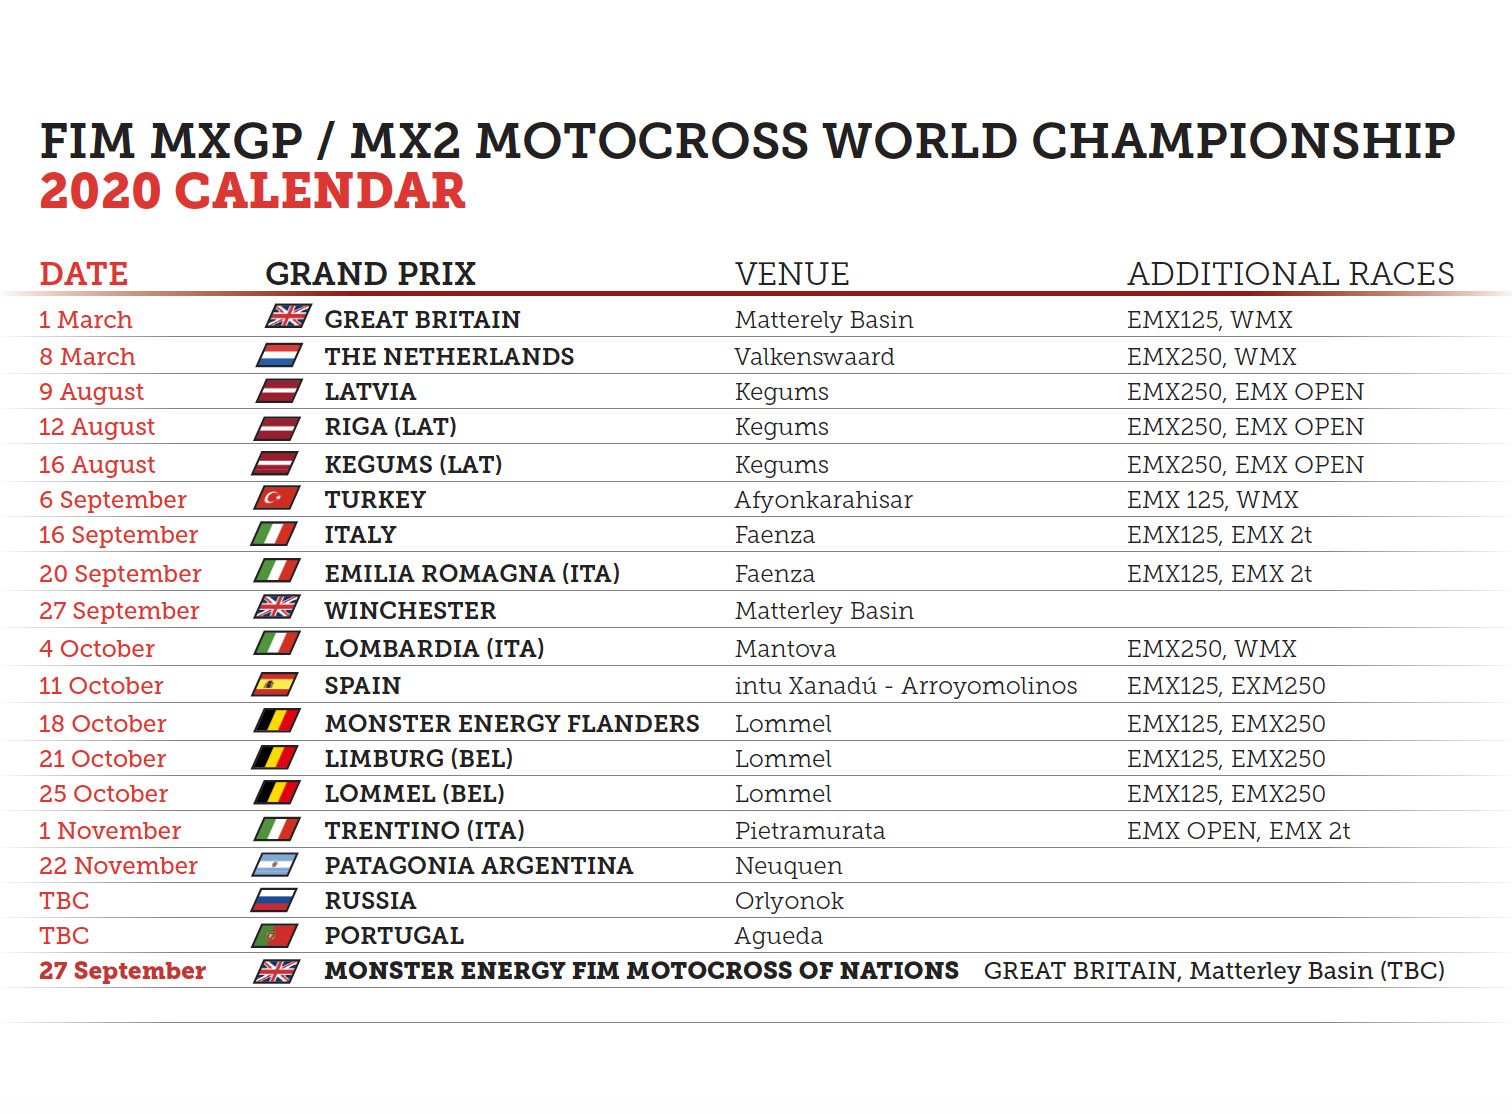 2020 MXGP updated calendar with triple- and doubleheaders.